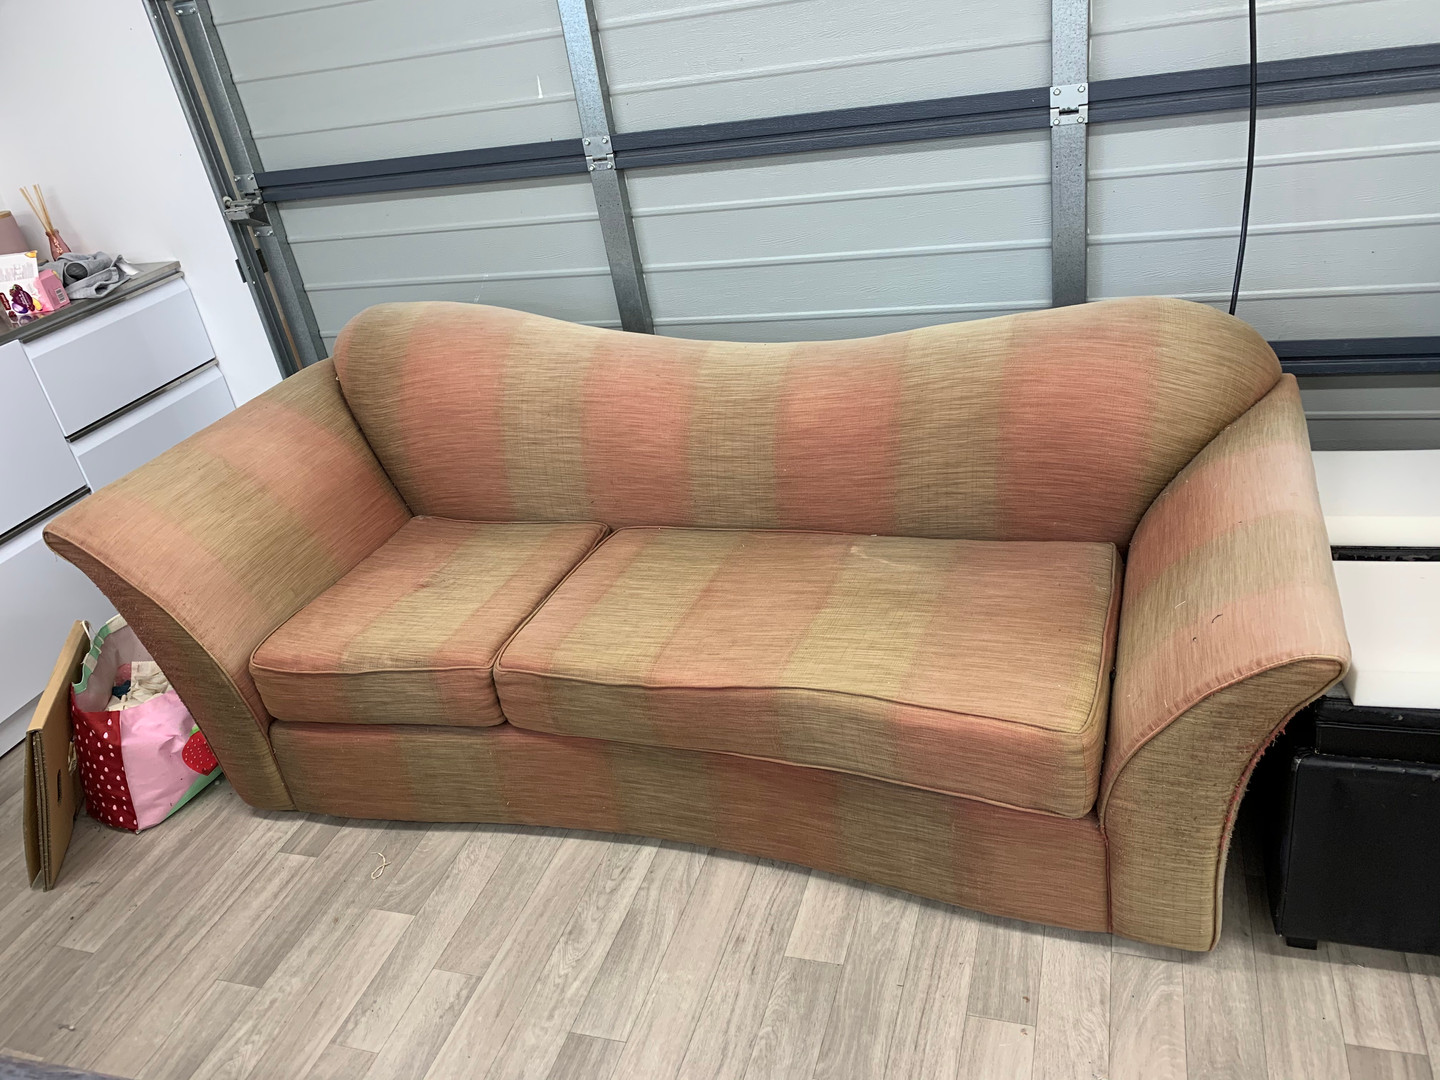 Curvy couch - Before